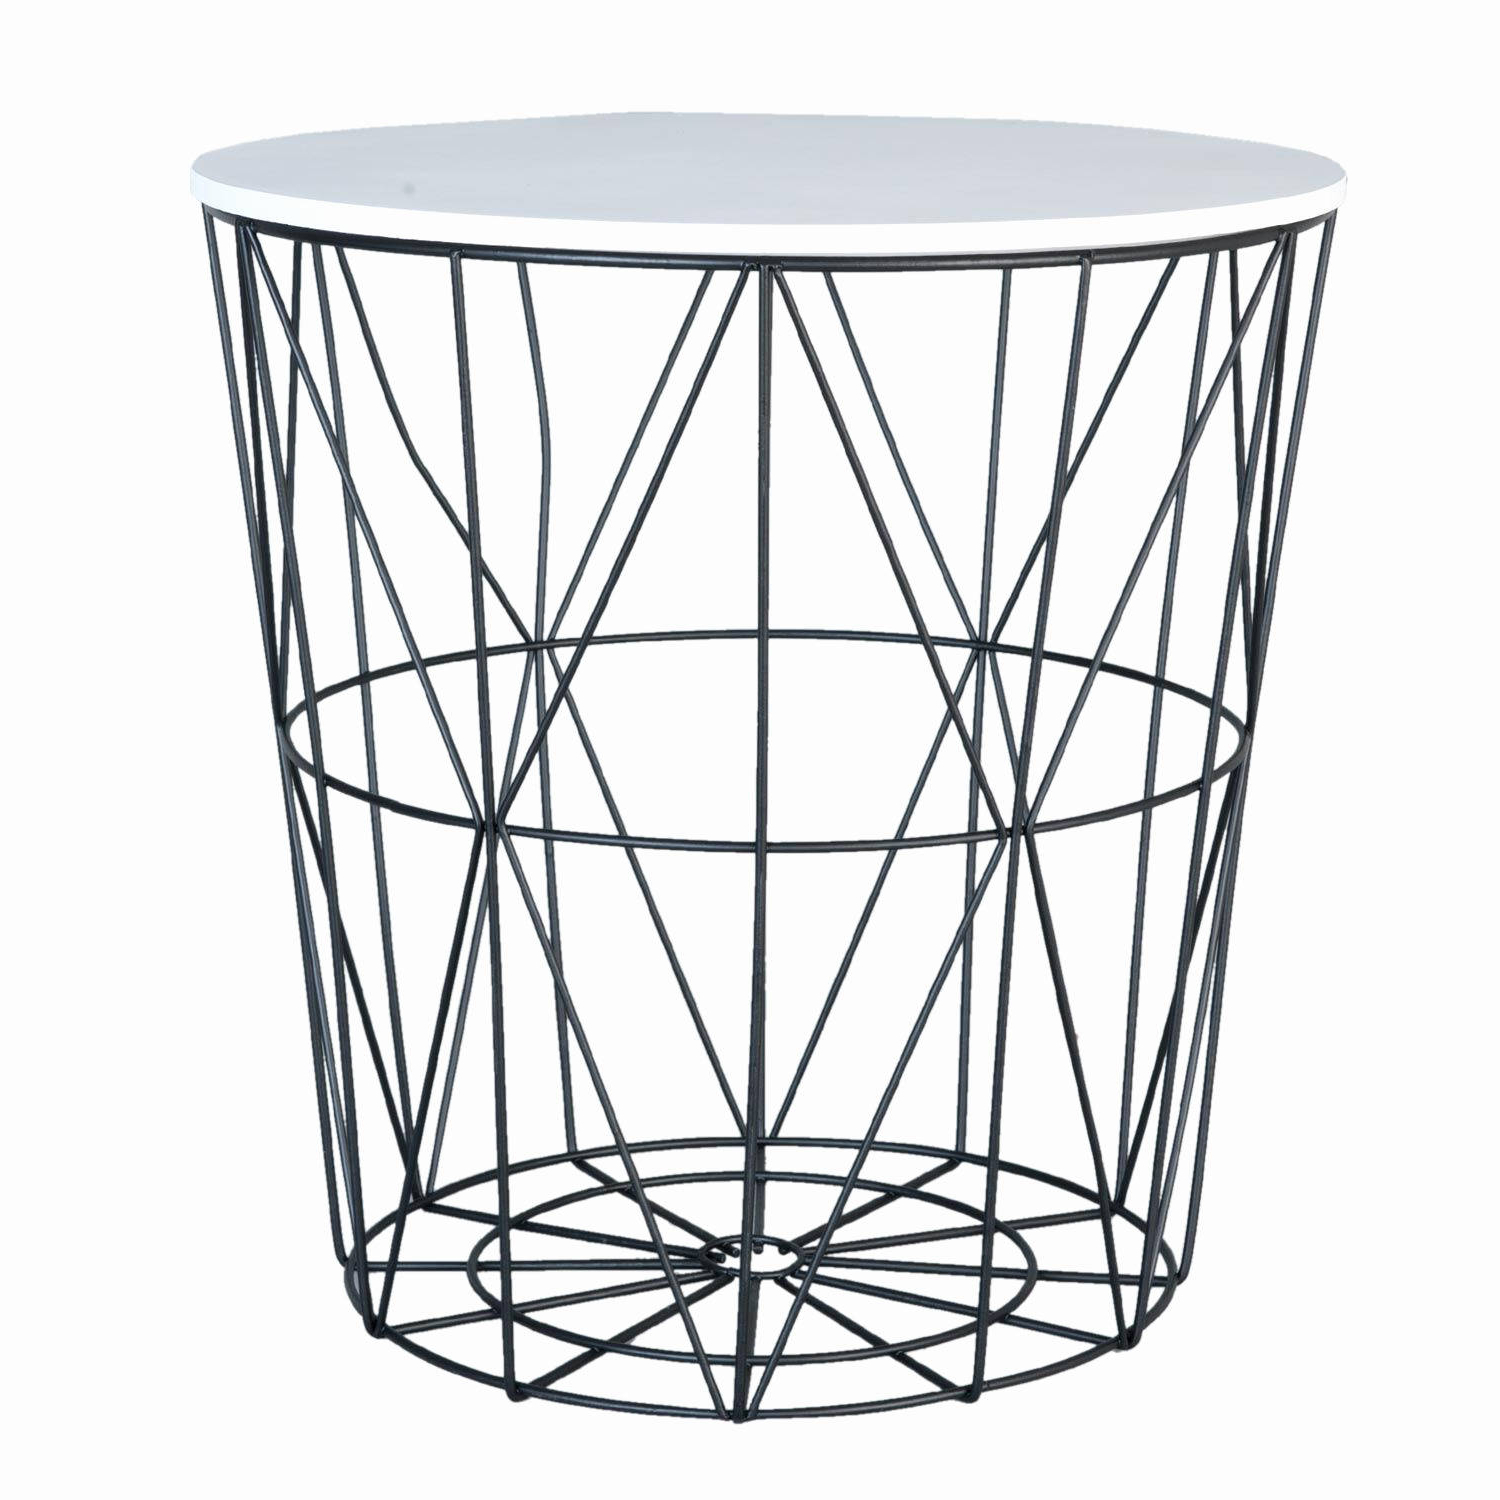 Fashionable White Coffee Table Black Legs Awesome White Black Geometric Side For Black Wire Coffee Tables (View 8 of 20)